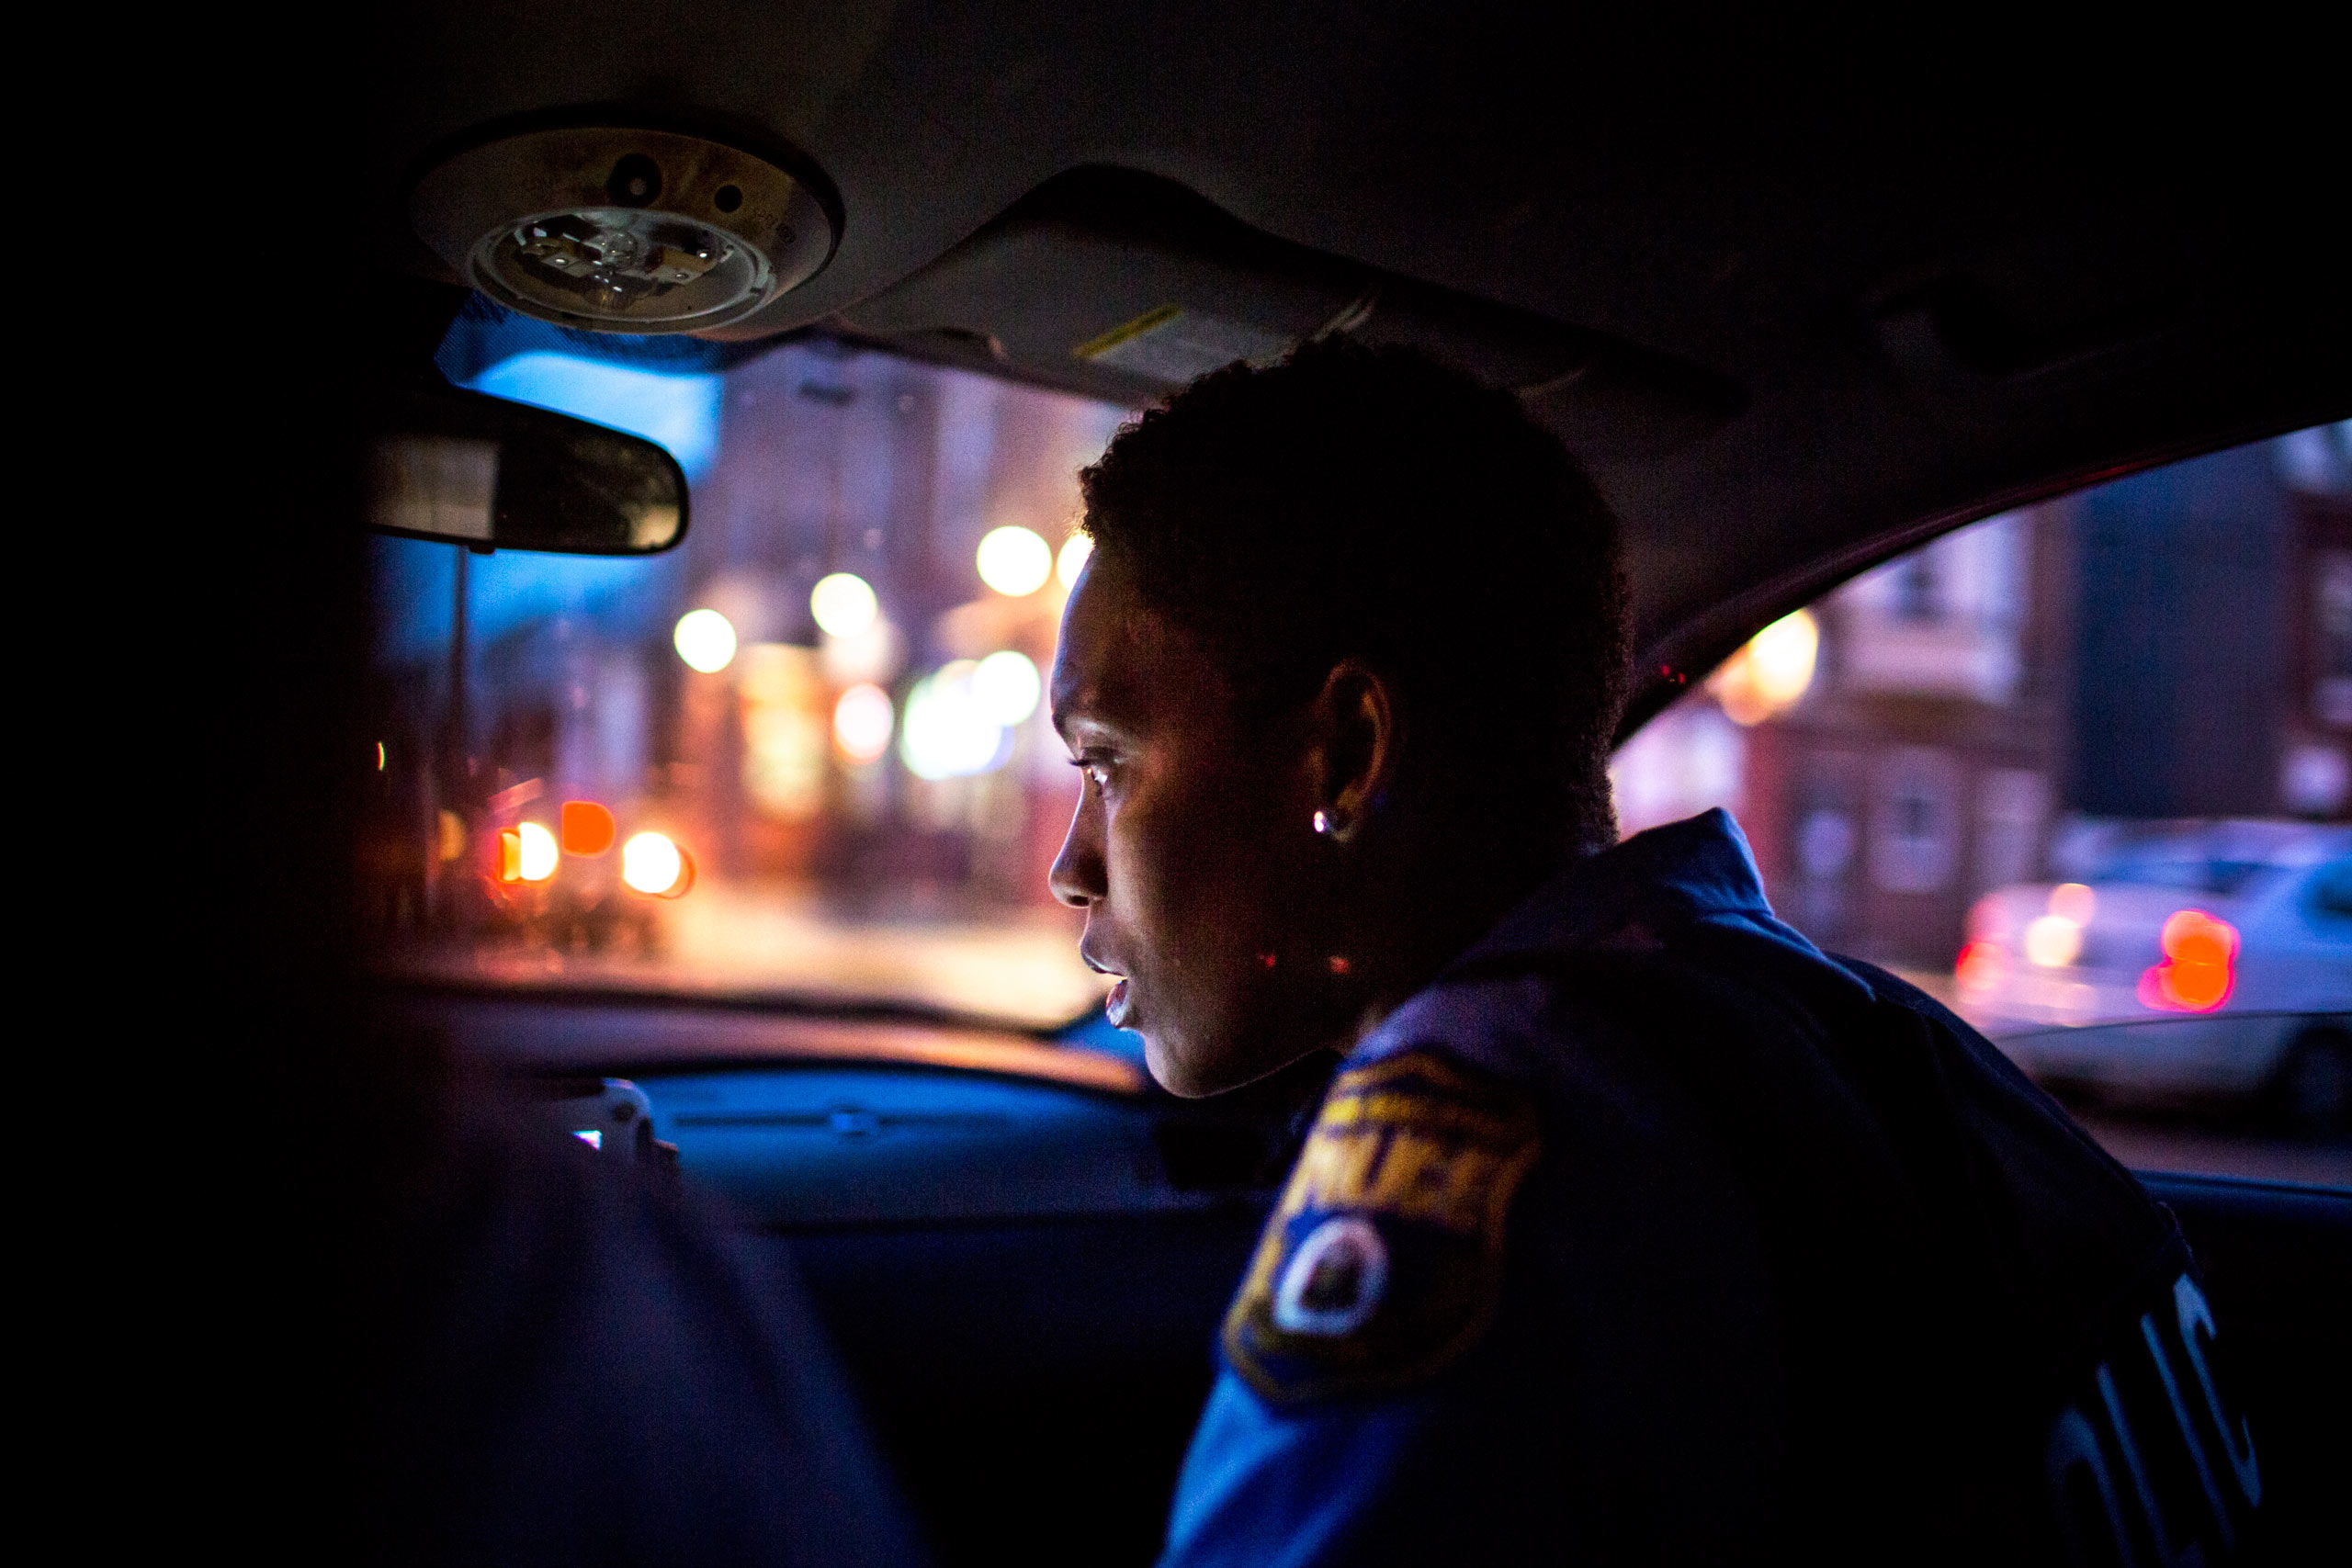 Officer Jade Howard inspects the patrol car's computer which gives information about incoming radio calls and suspects. July 29, 2015. Philadelphia, Pa.